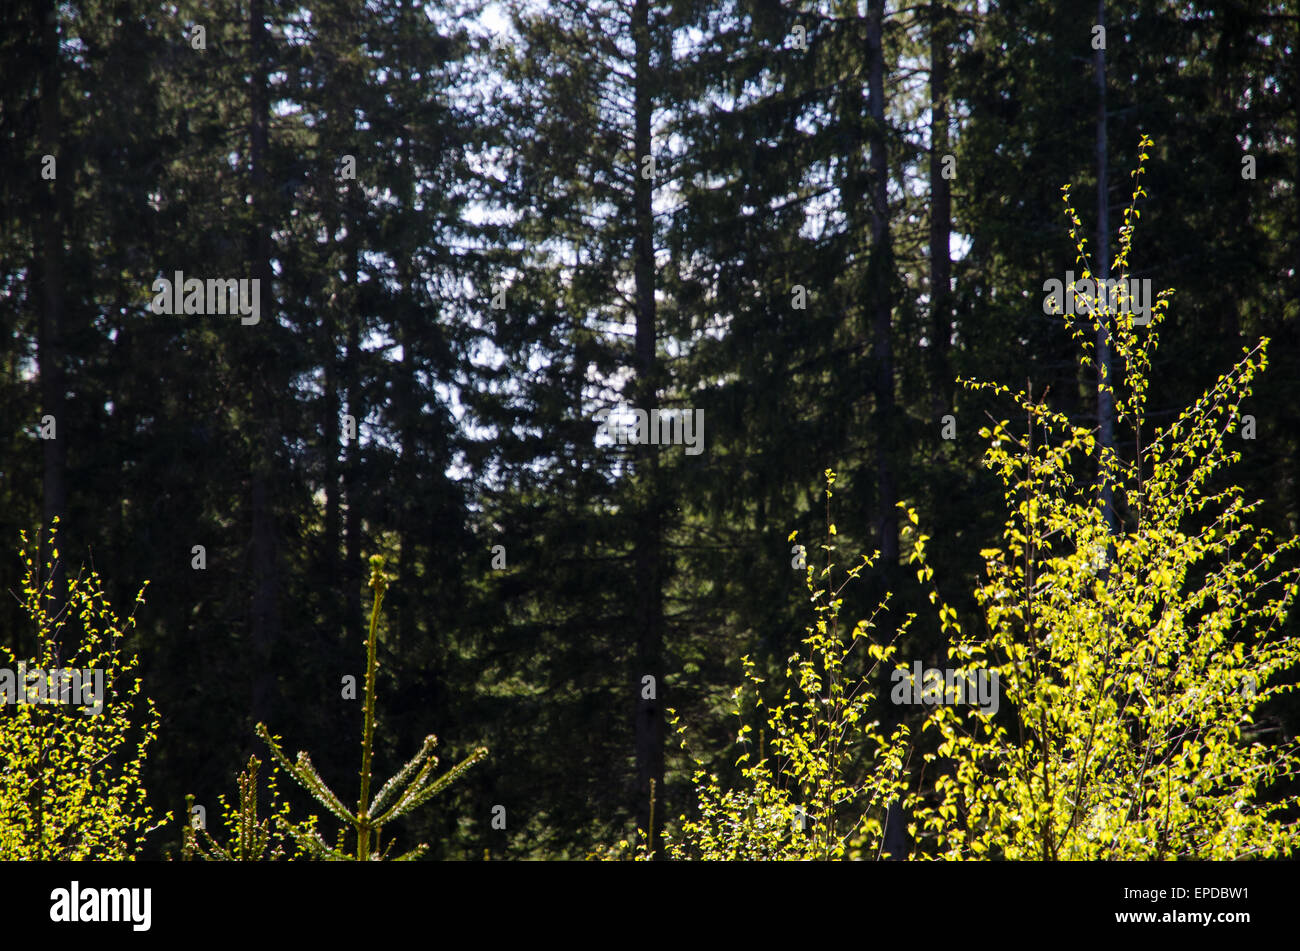 Shiny fresh birch leaves at a background of a spruce forest - Stock Image